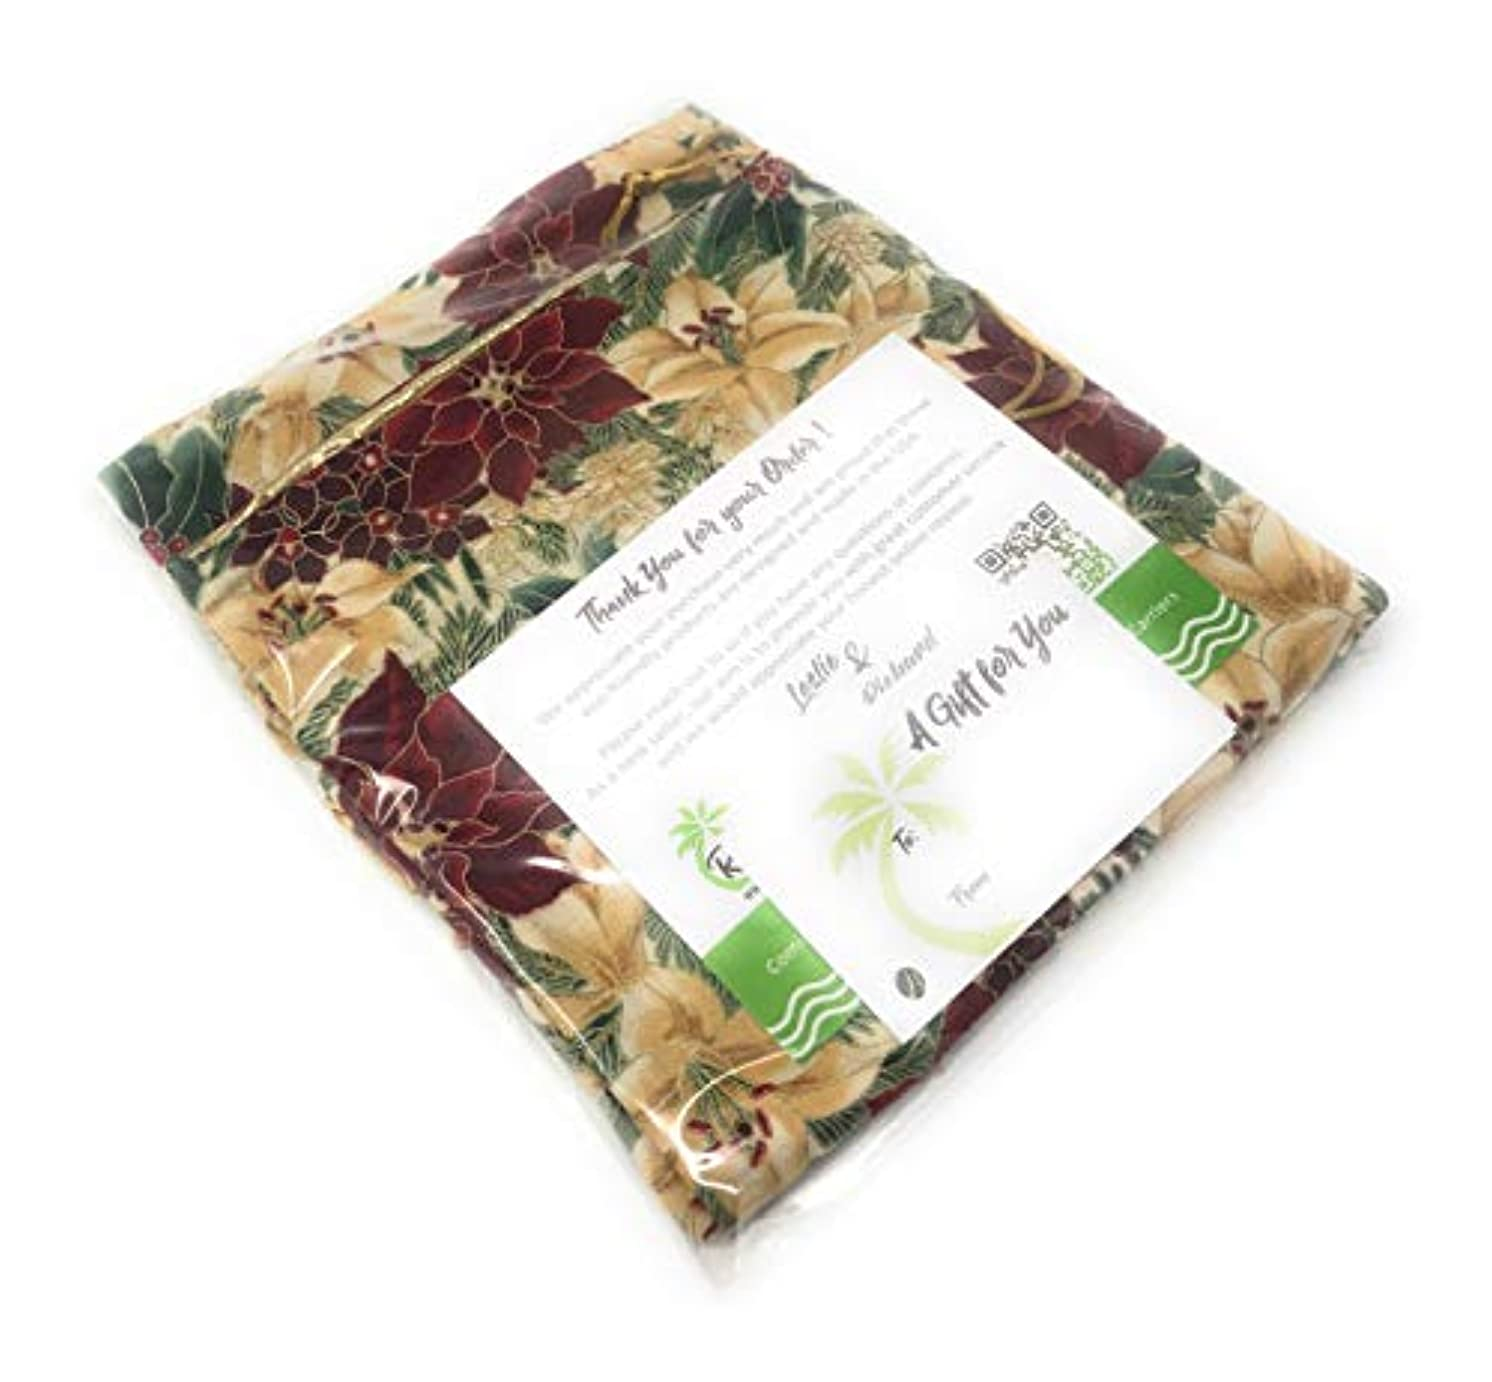 Red/Wht. Poinsettias Fabric -Reusable Drawstring Gift Bag | Eco-Friendly Alternative to Paper Giftwrap for Wine Bottles | Christmas, Holidays | Cotton Cloth Fully-Lined Gold Lamé, 14